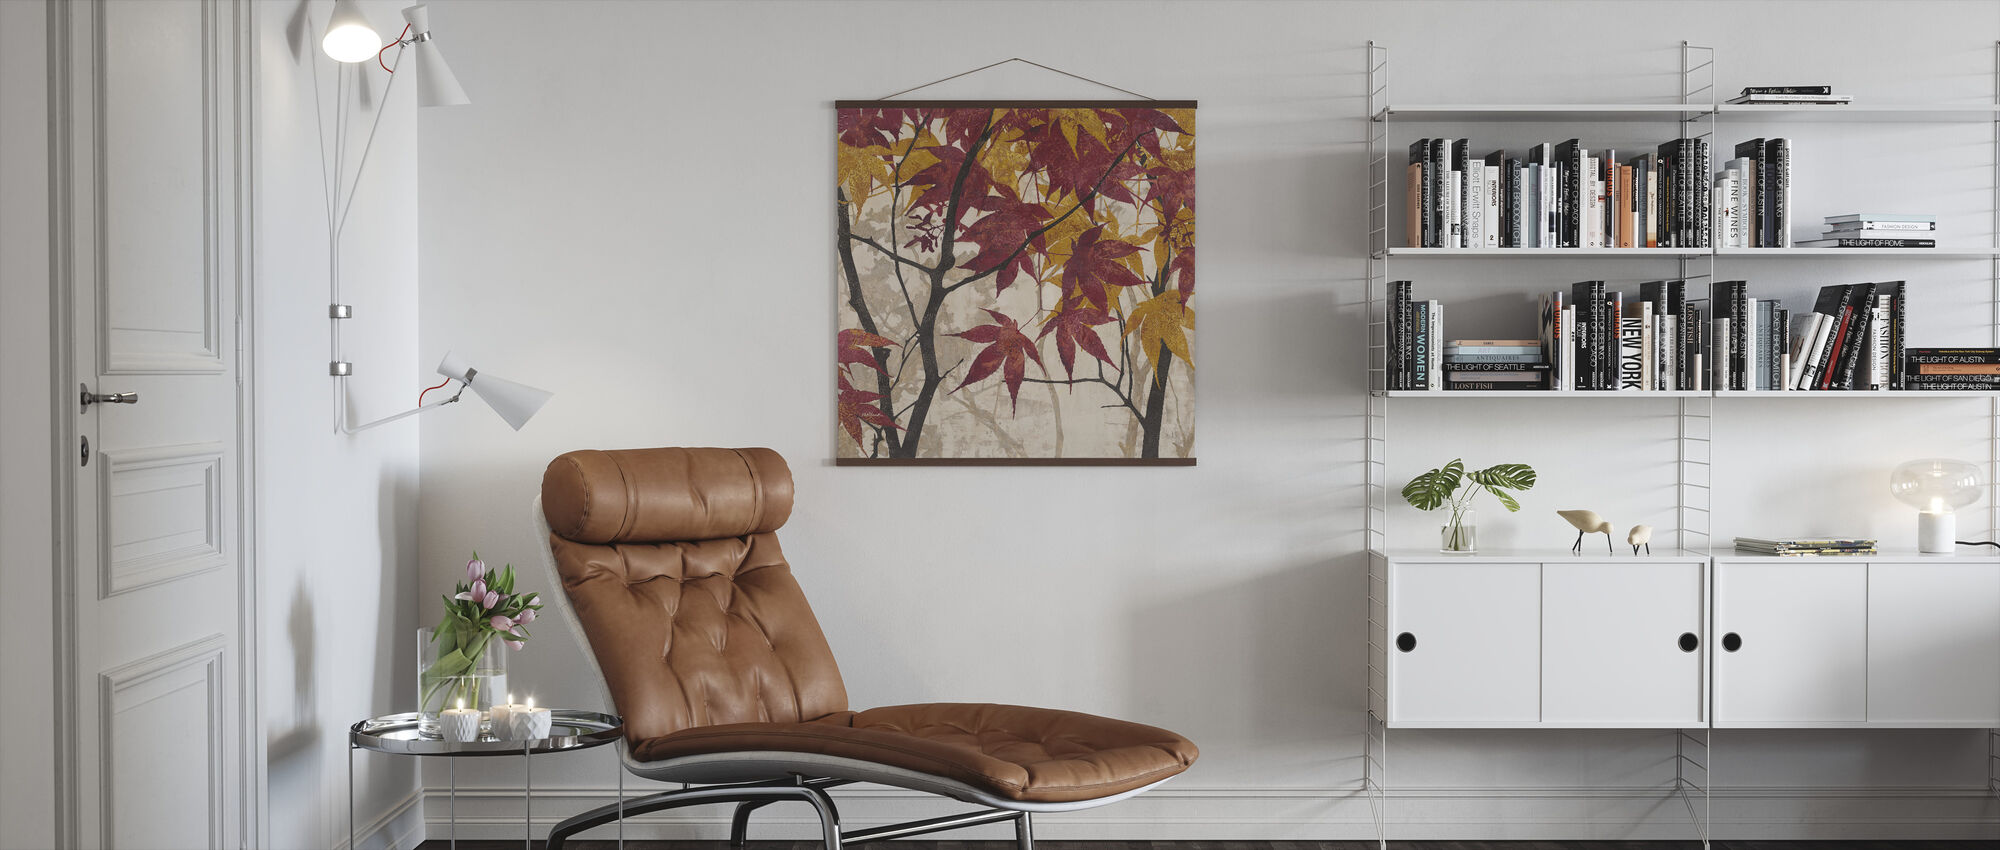 Maple Story 1 - Poster - Living Room